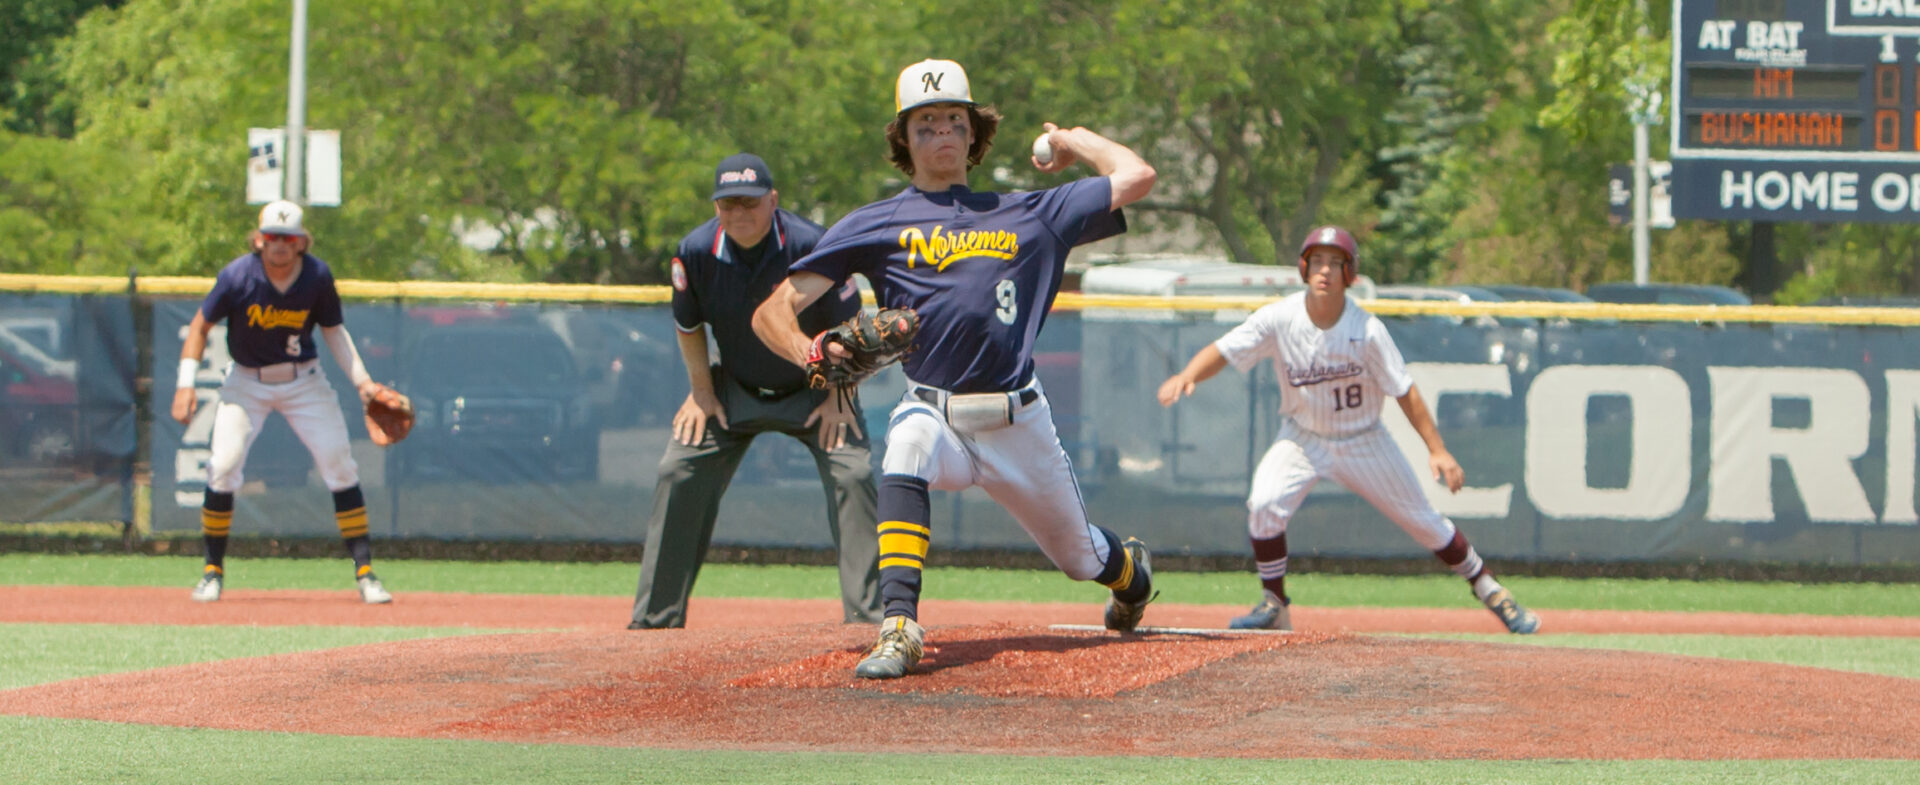 North Muskegon baseball team's great season ends abruptly in a 9-0 loss to top-ranked Buchanan in regional semifinals